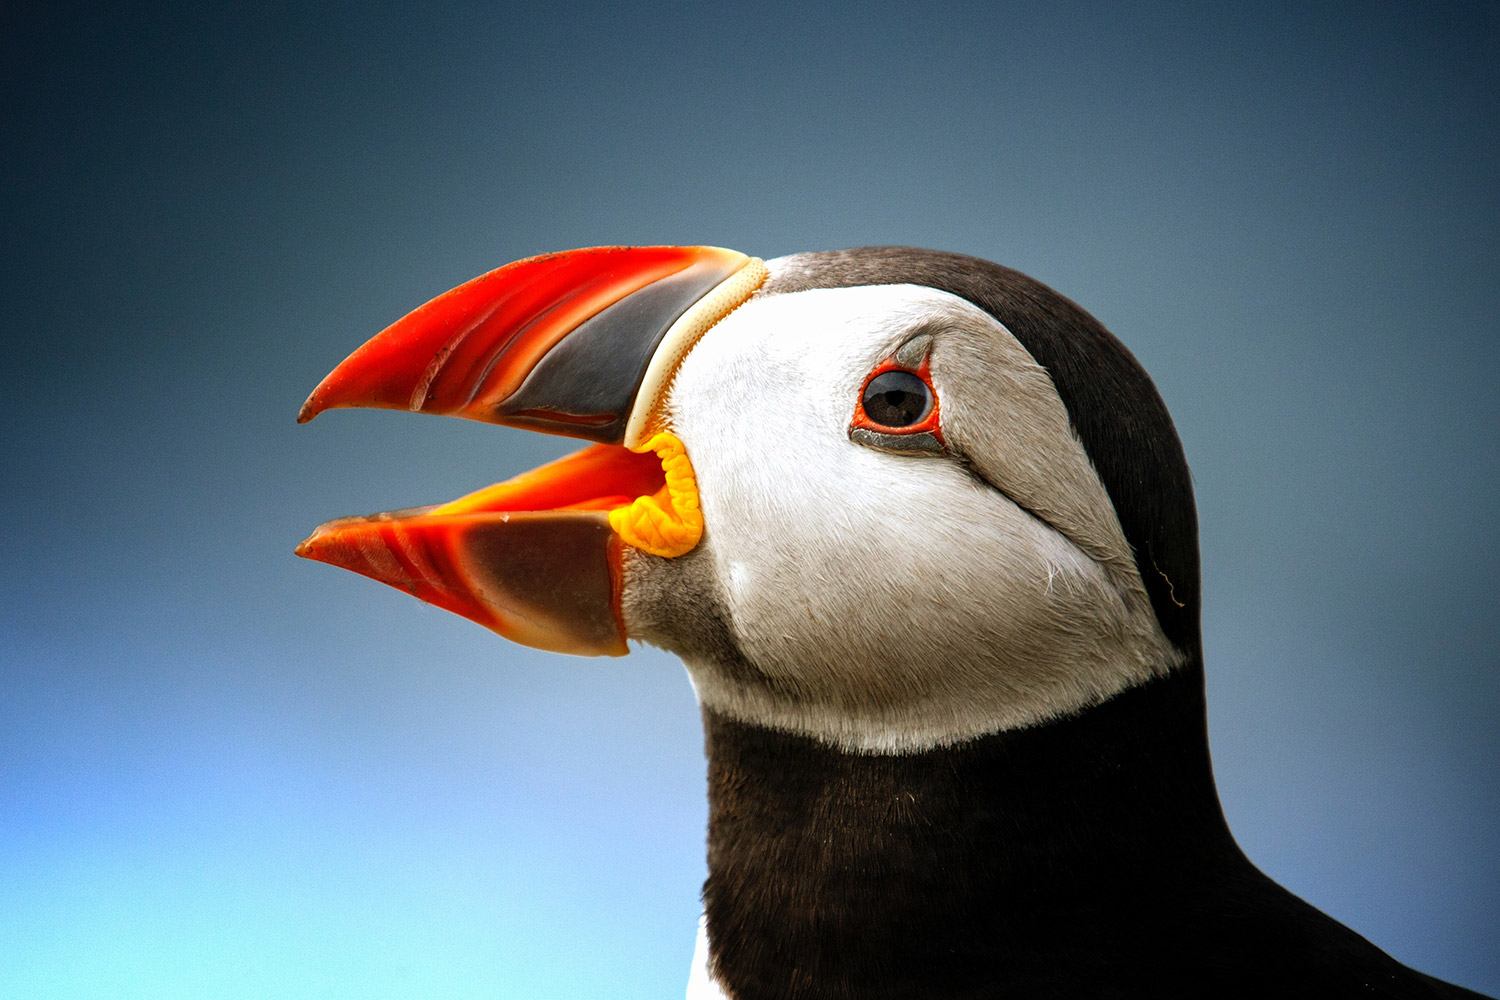 Skomer puffin photographers are crushing birds to death  The Telegraph - July 31, 2018